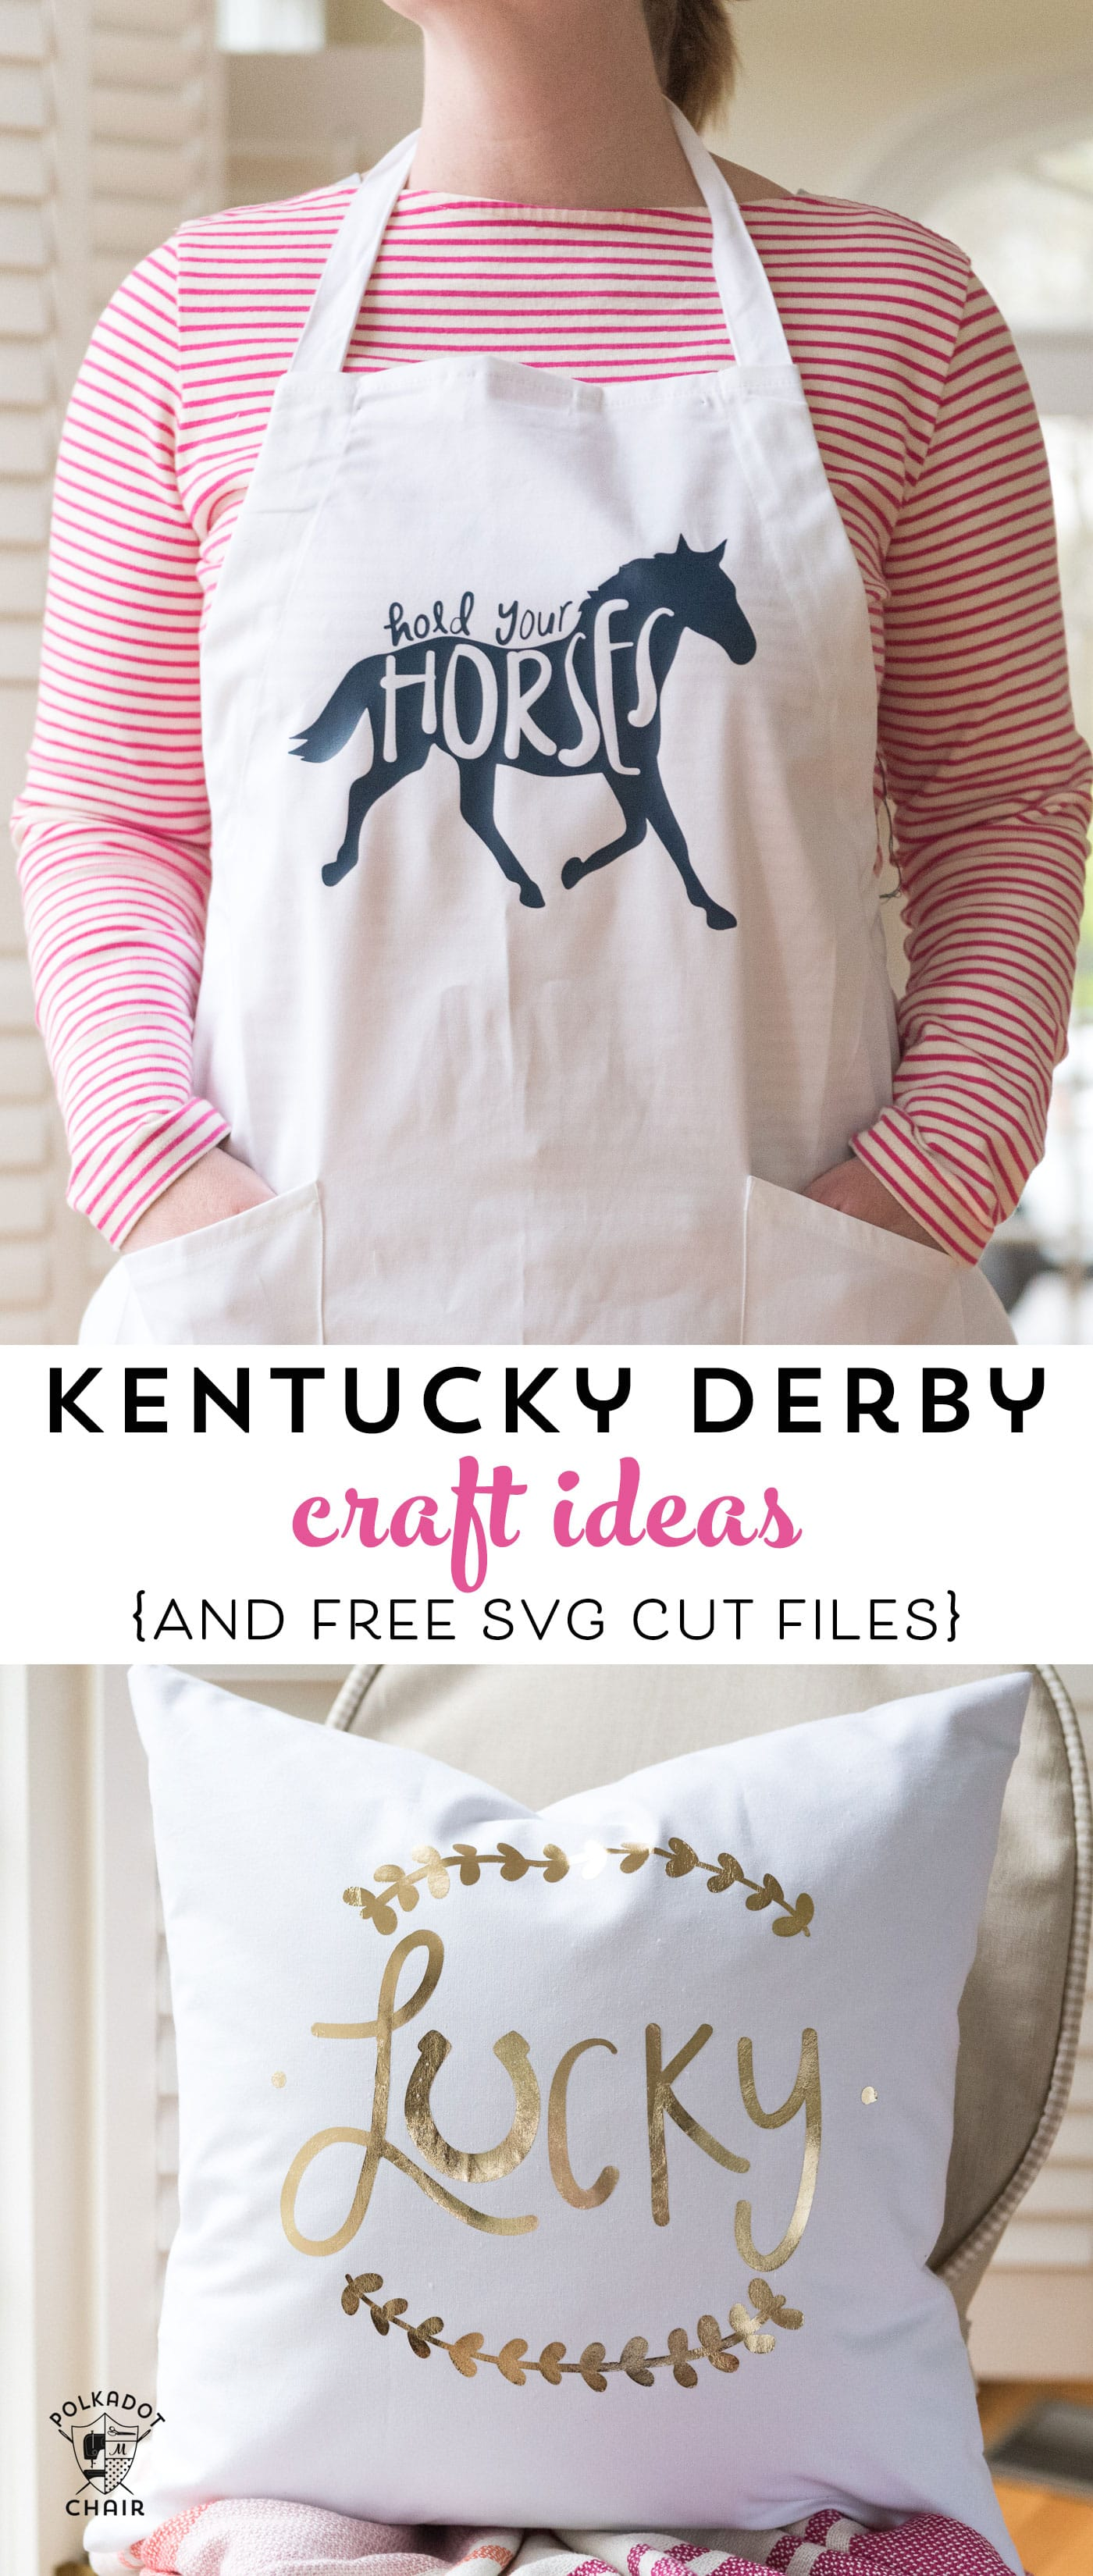 Kentucky Derby Craft ideas and free svg file for a Lucky Pillow to make your own pillow cover #CricutMade #Derby #KentuckyDerbyCrafts #CraftIdeas #DIYPillowCover